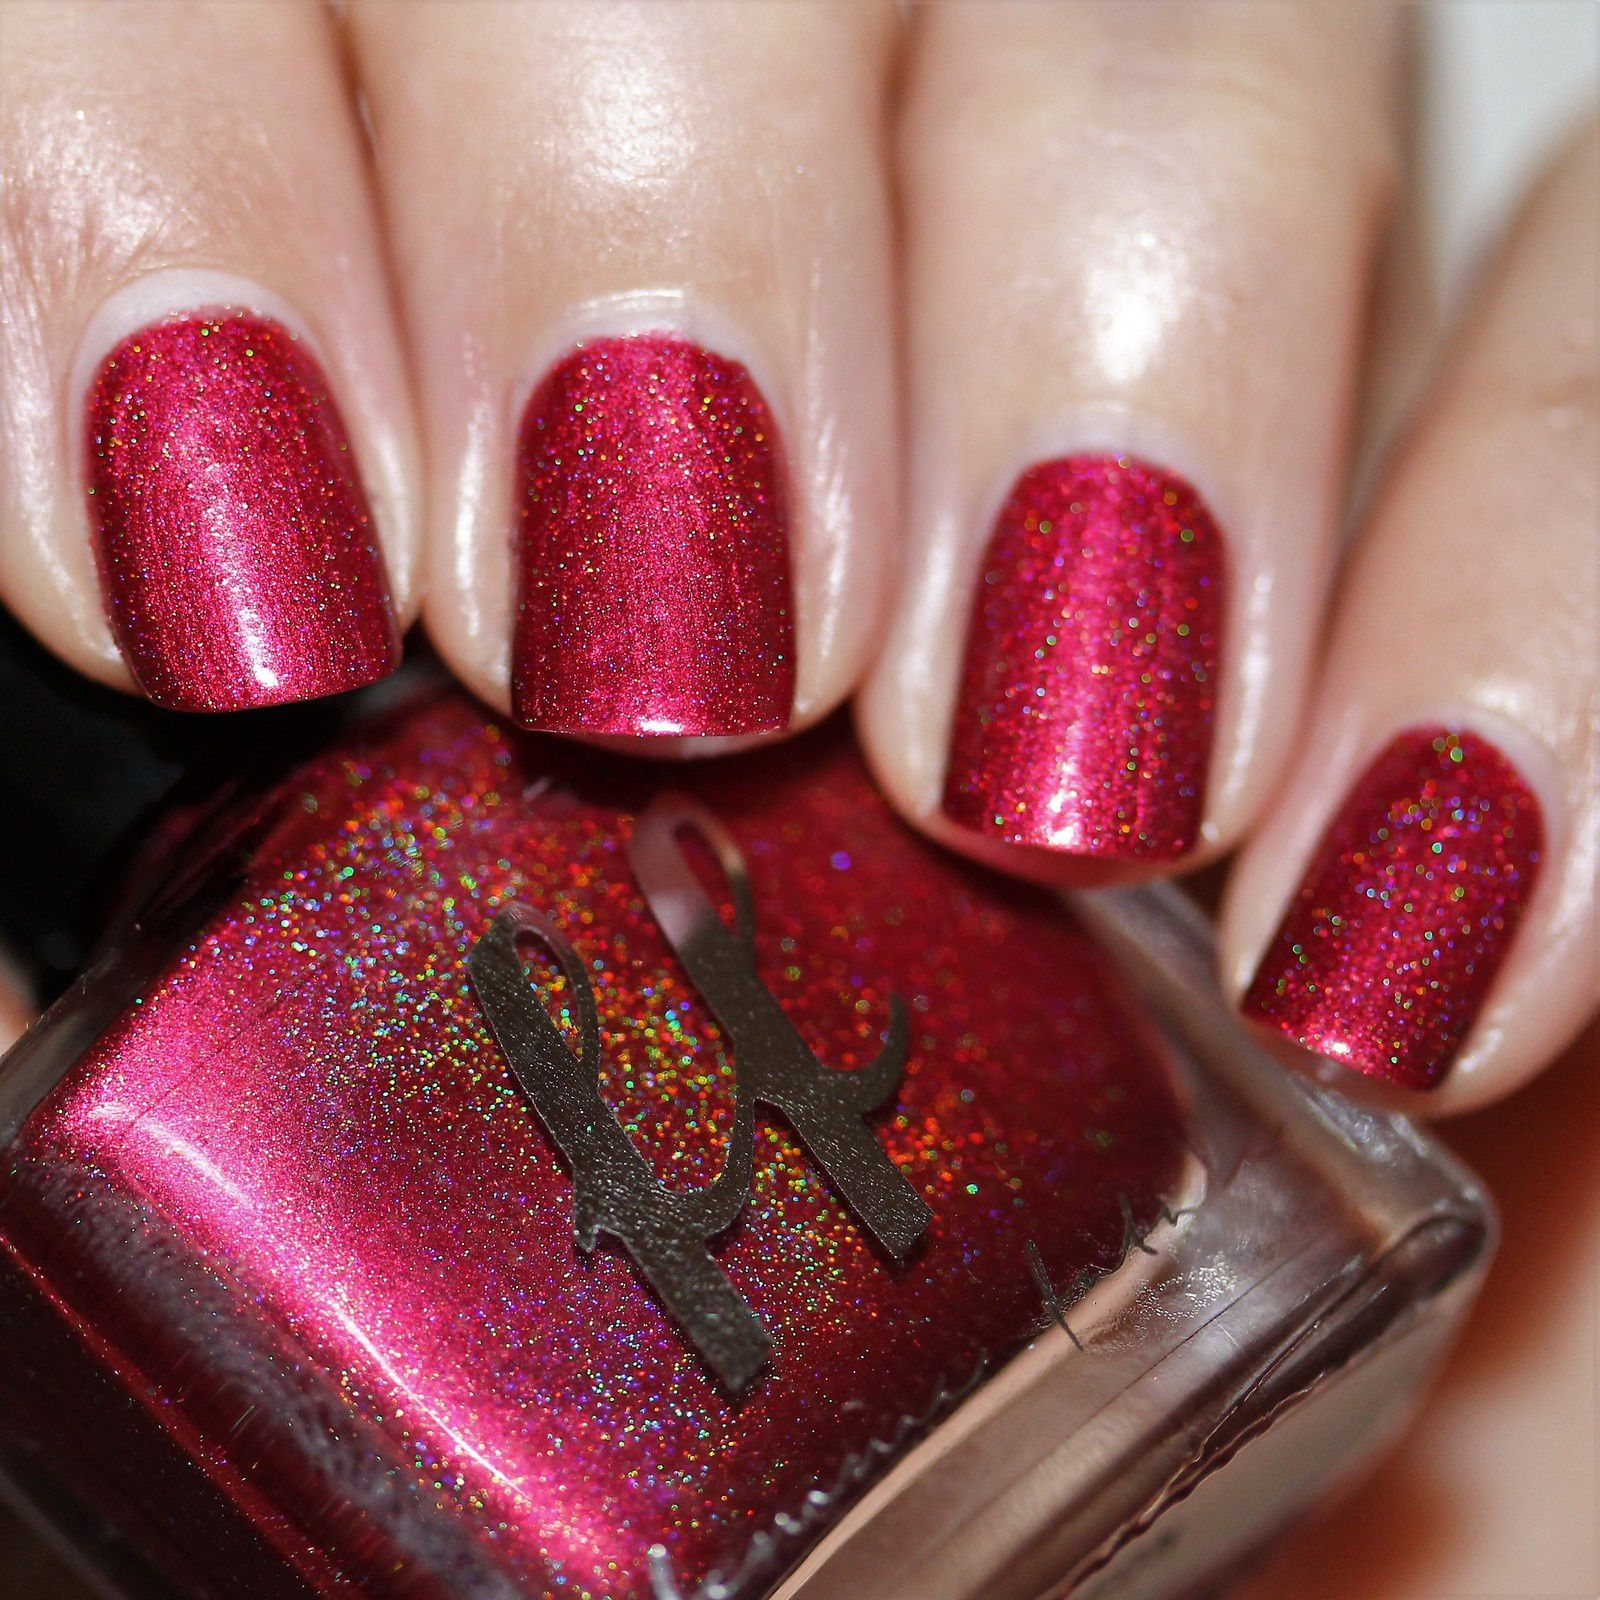 Luckdragon (2 coats no top coat), a bold ruby red scattered holographic.